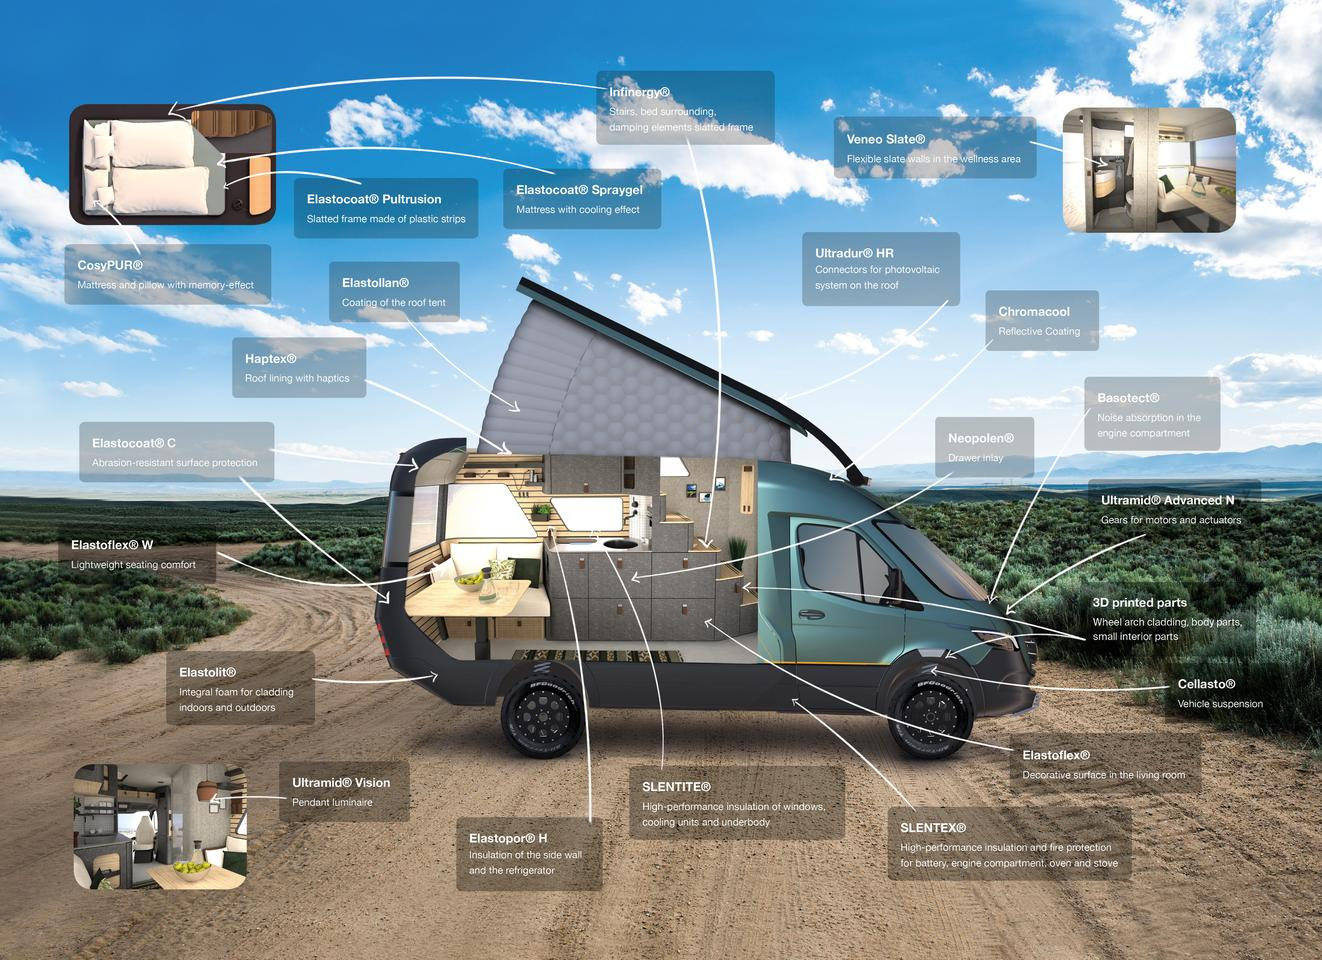 BASF shows the various materials and technologies that it supplied for the Hymer VisionVenture concept